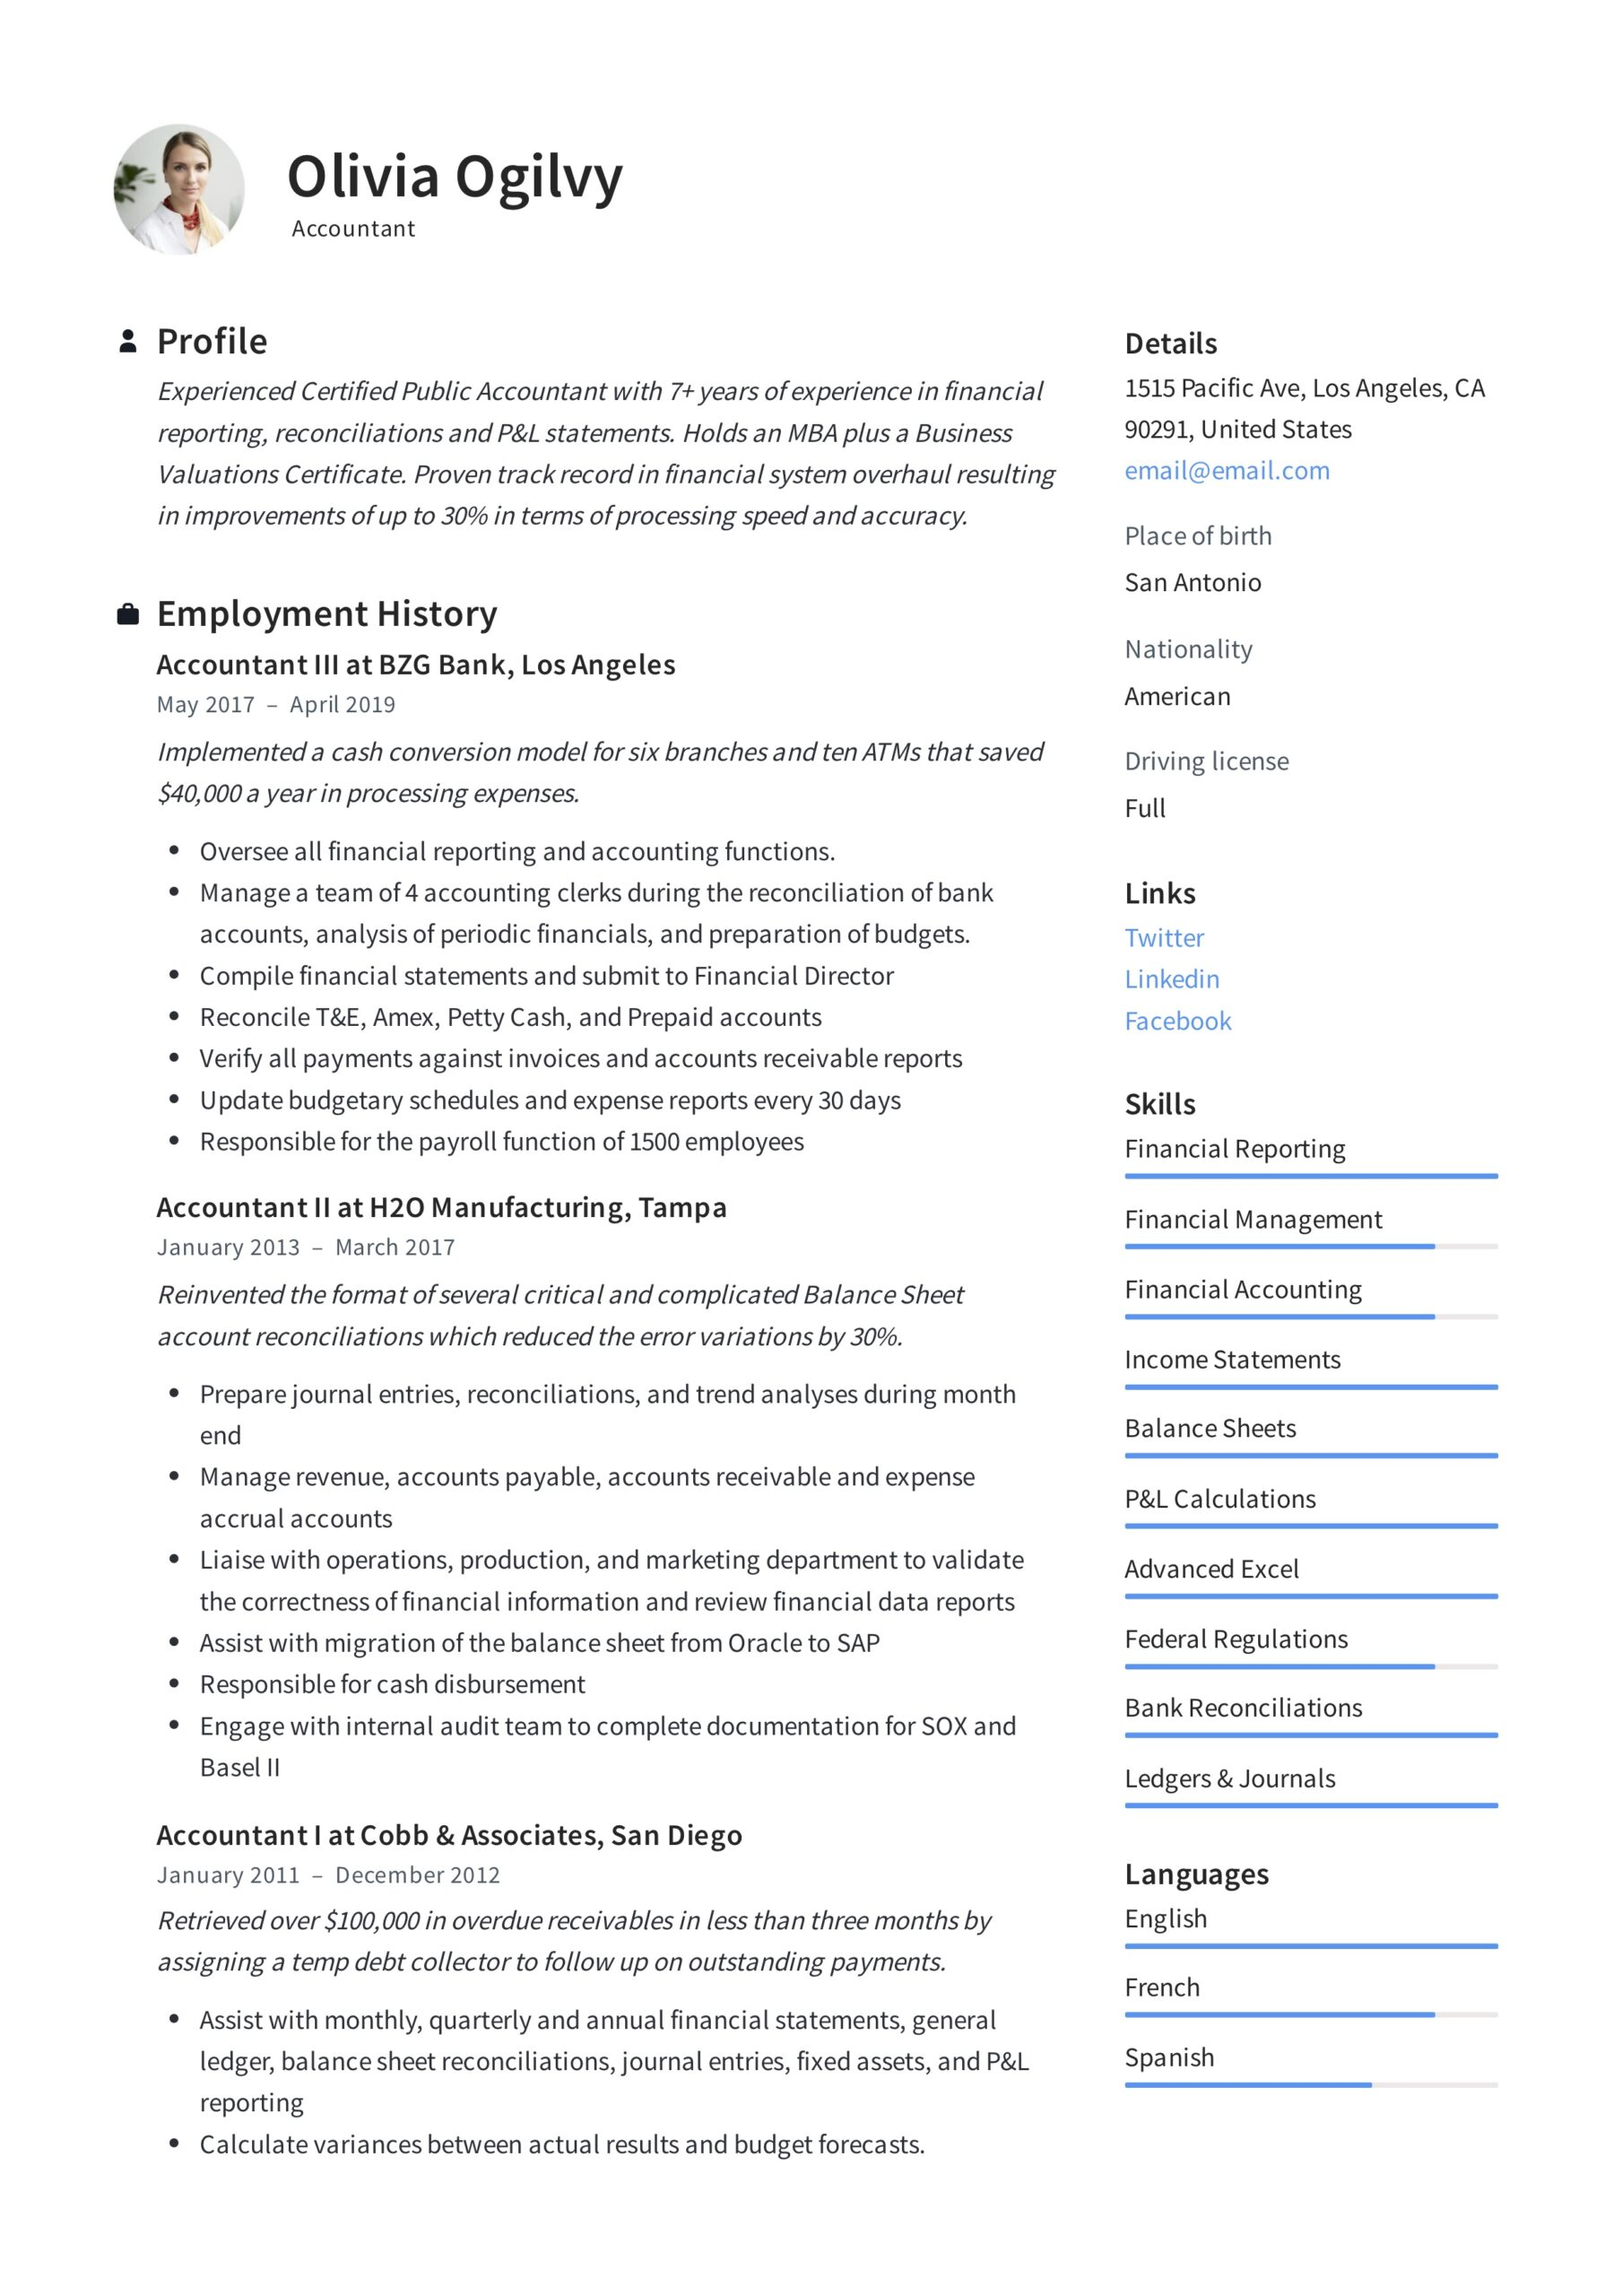 accountant resume writing guide templates pdf work experience olivia ogilvy best software Resume Work Experience Accountant Resume